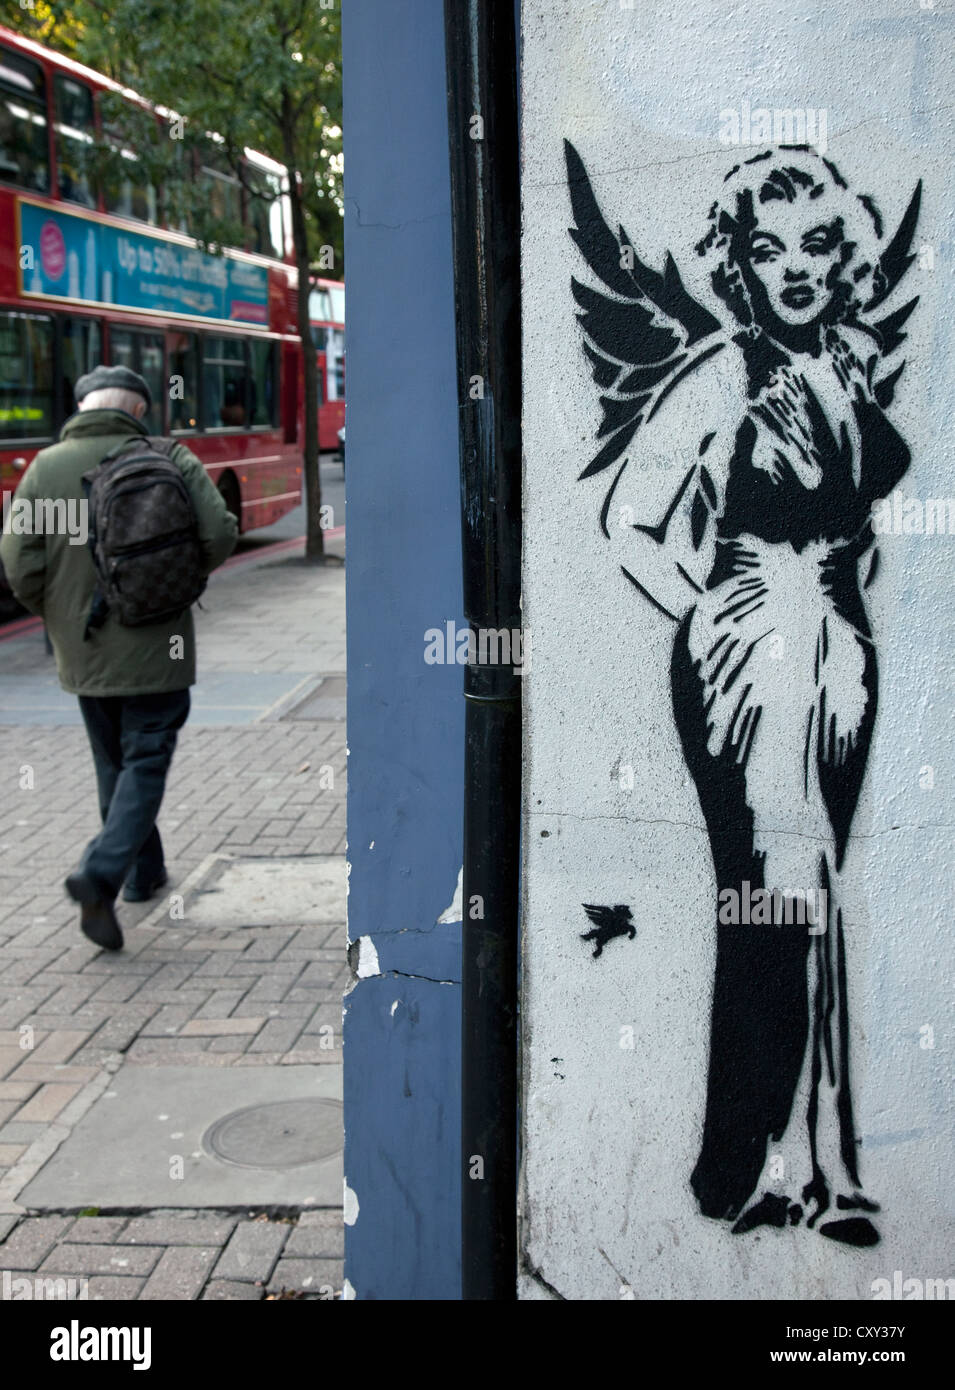 Marilyn Monroe as an angel stencil graffiti in London street - Stock Image